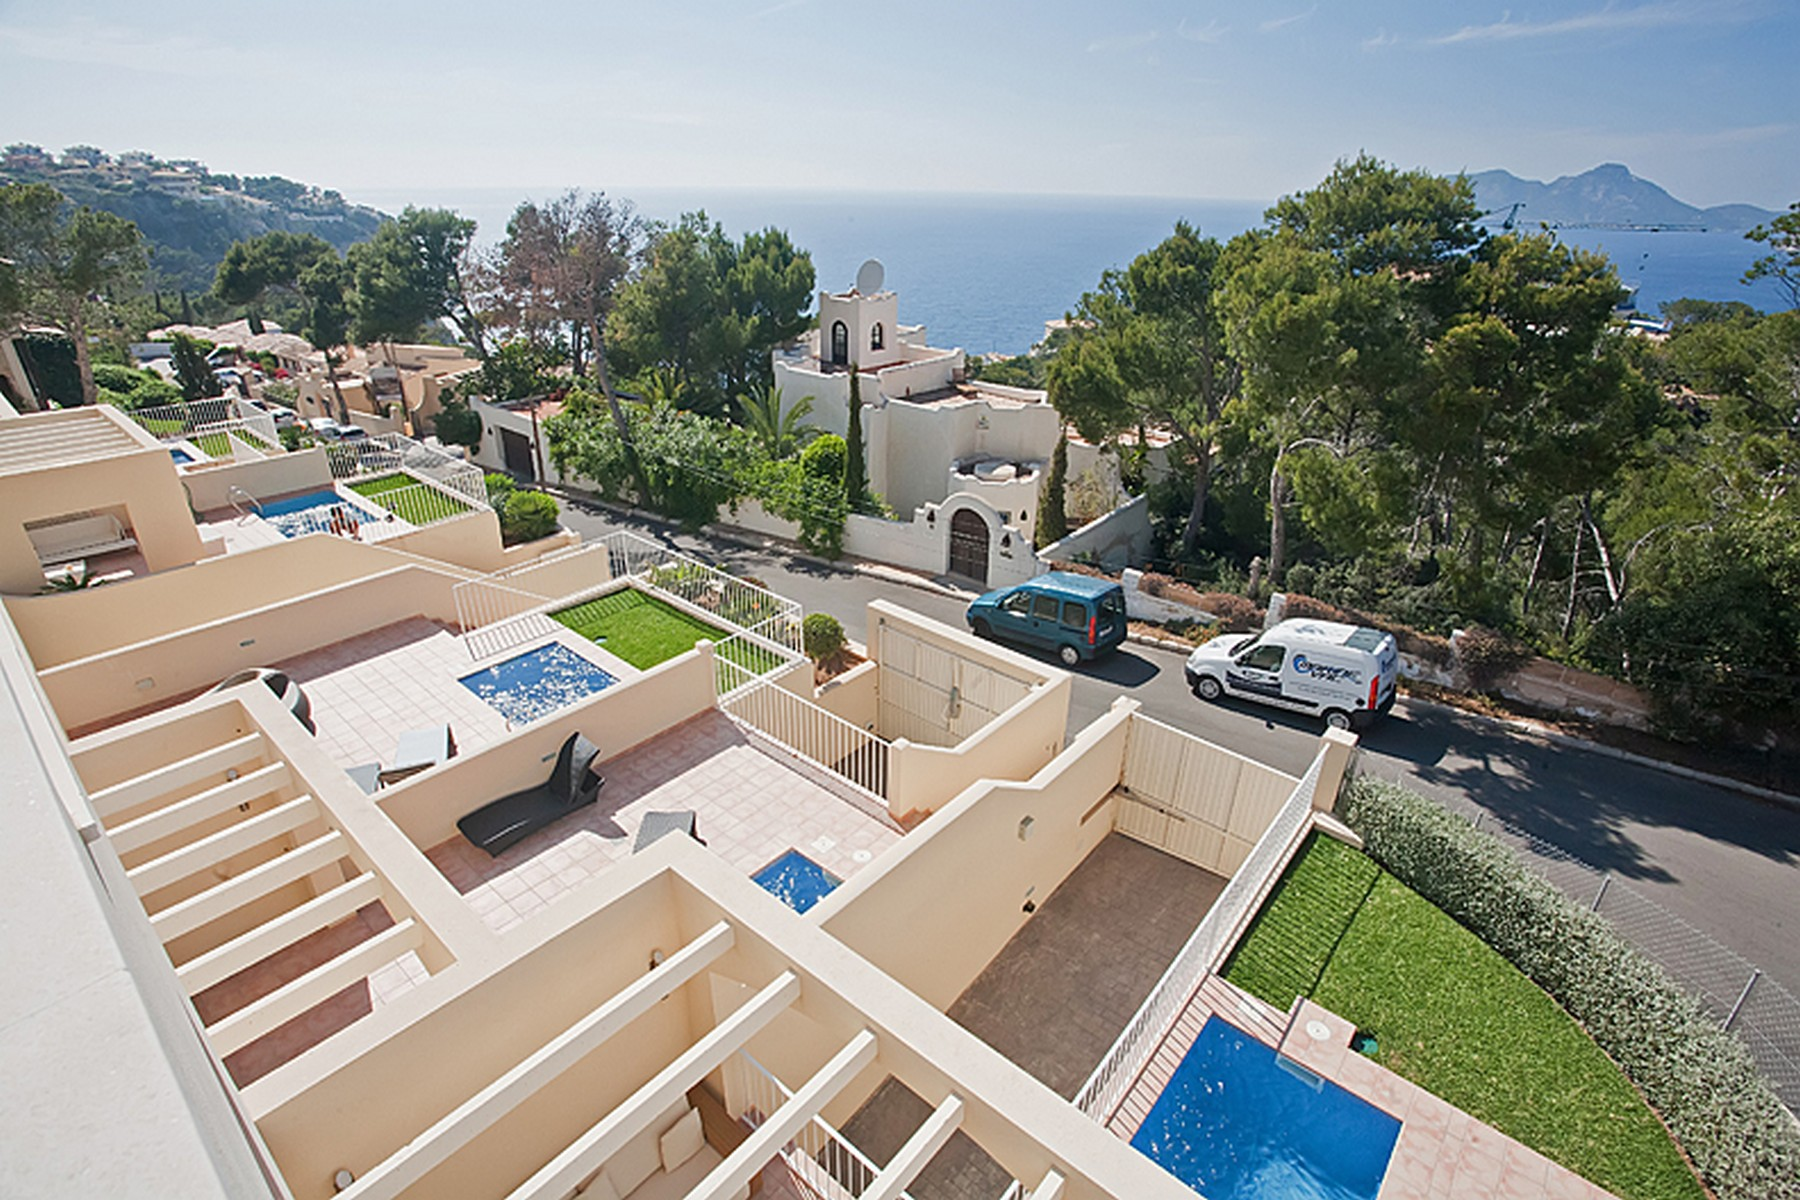 Single Family Home for Sale at Terraced house with sea views in Puerto de Andratx Port Andratx, Mallorca, 07157 Spain